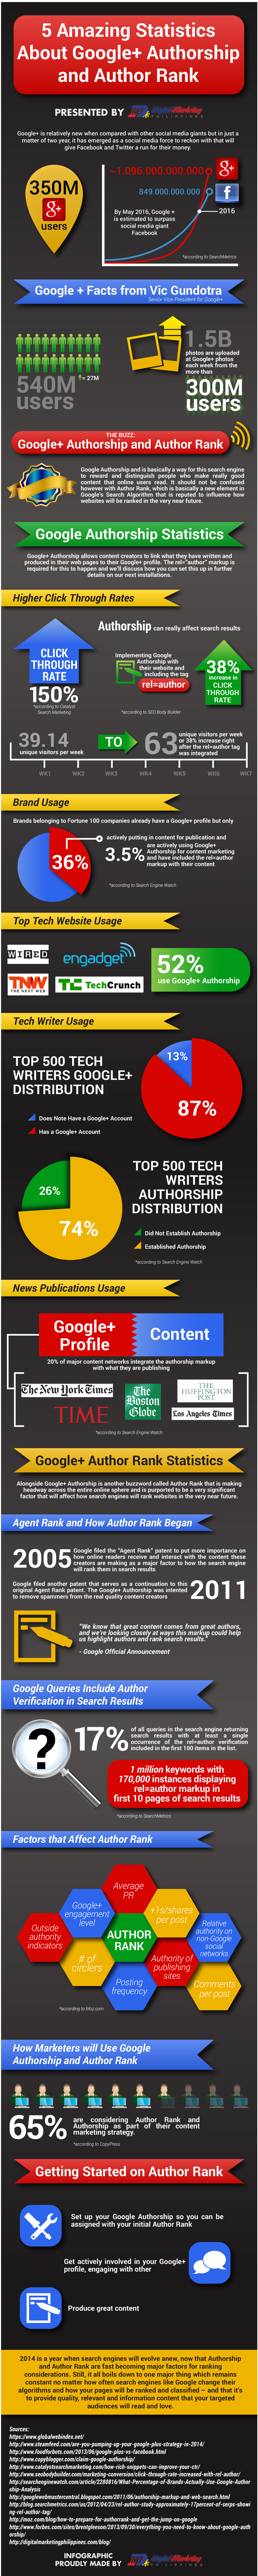 5-Amazing-Statistics-About-Google-Plus-Authorship-and-Author-Rank